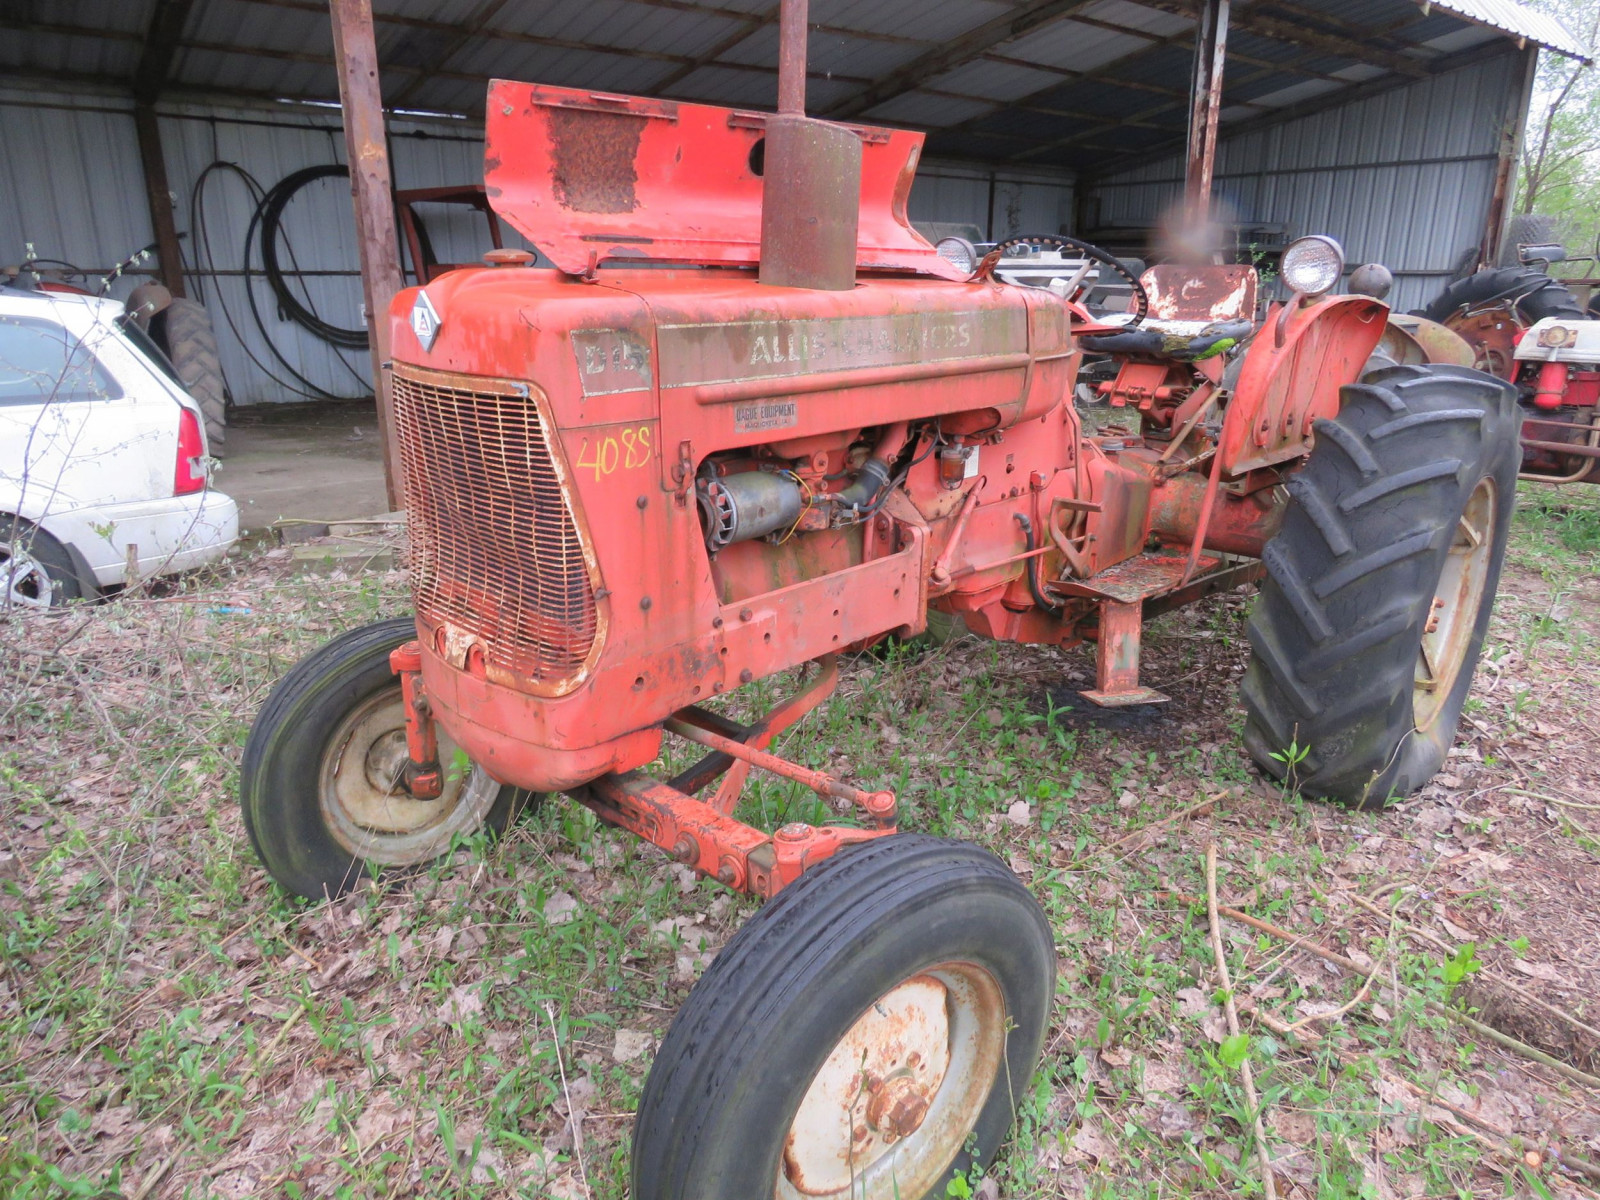 Allis Chalmers D-15 Tractor - Image 1